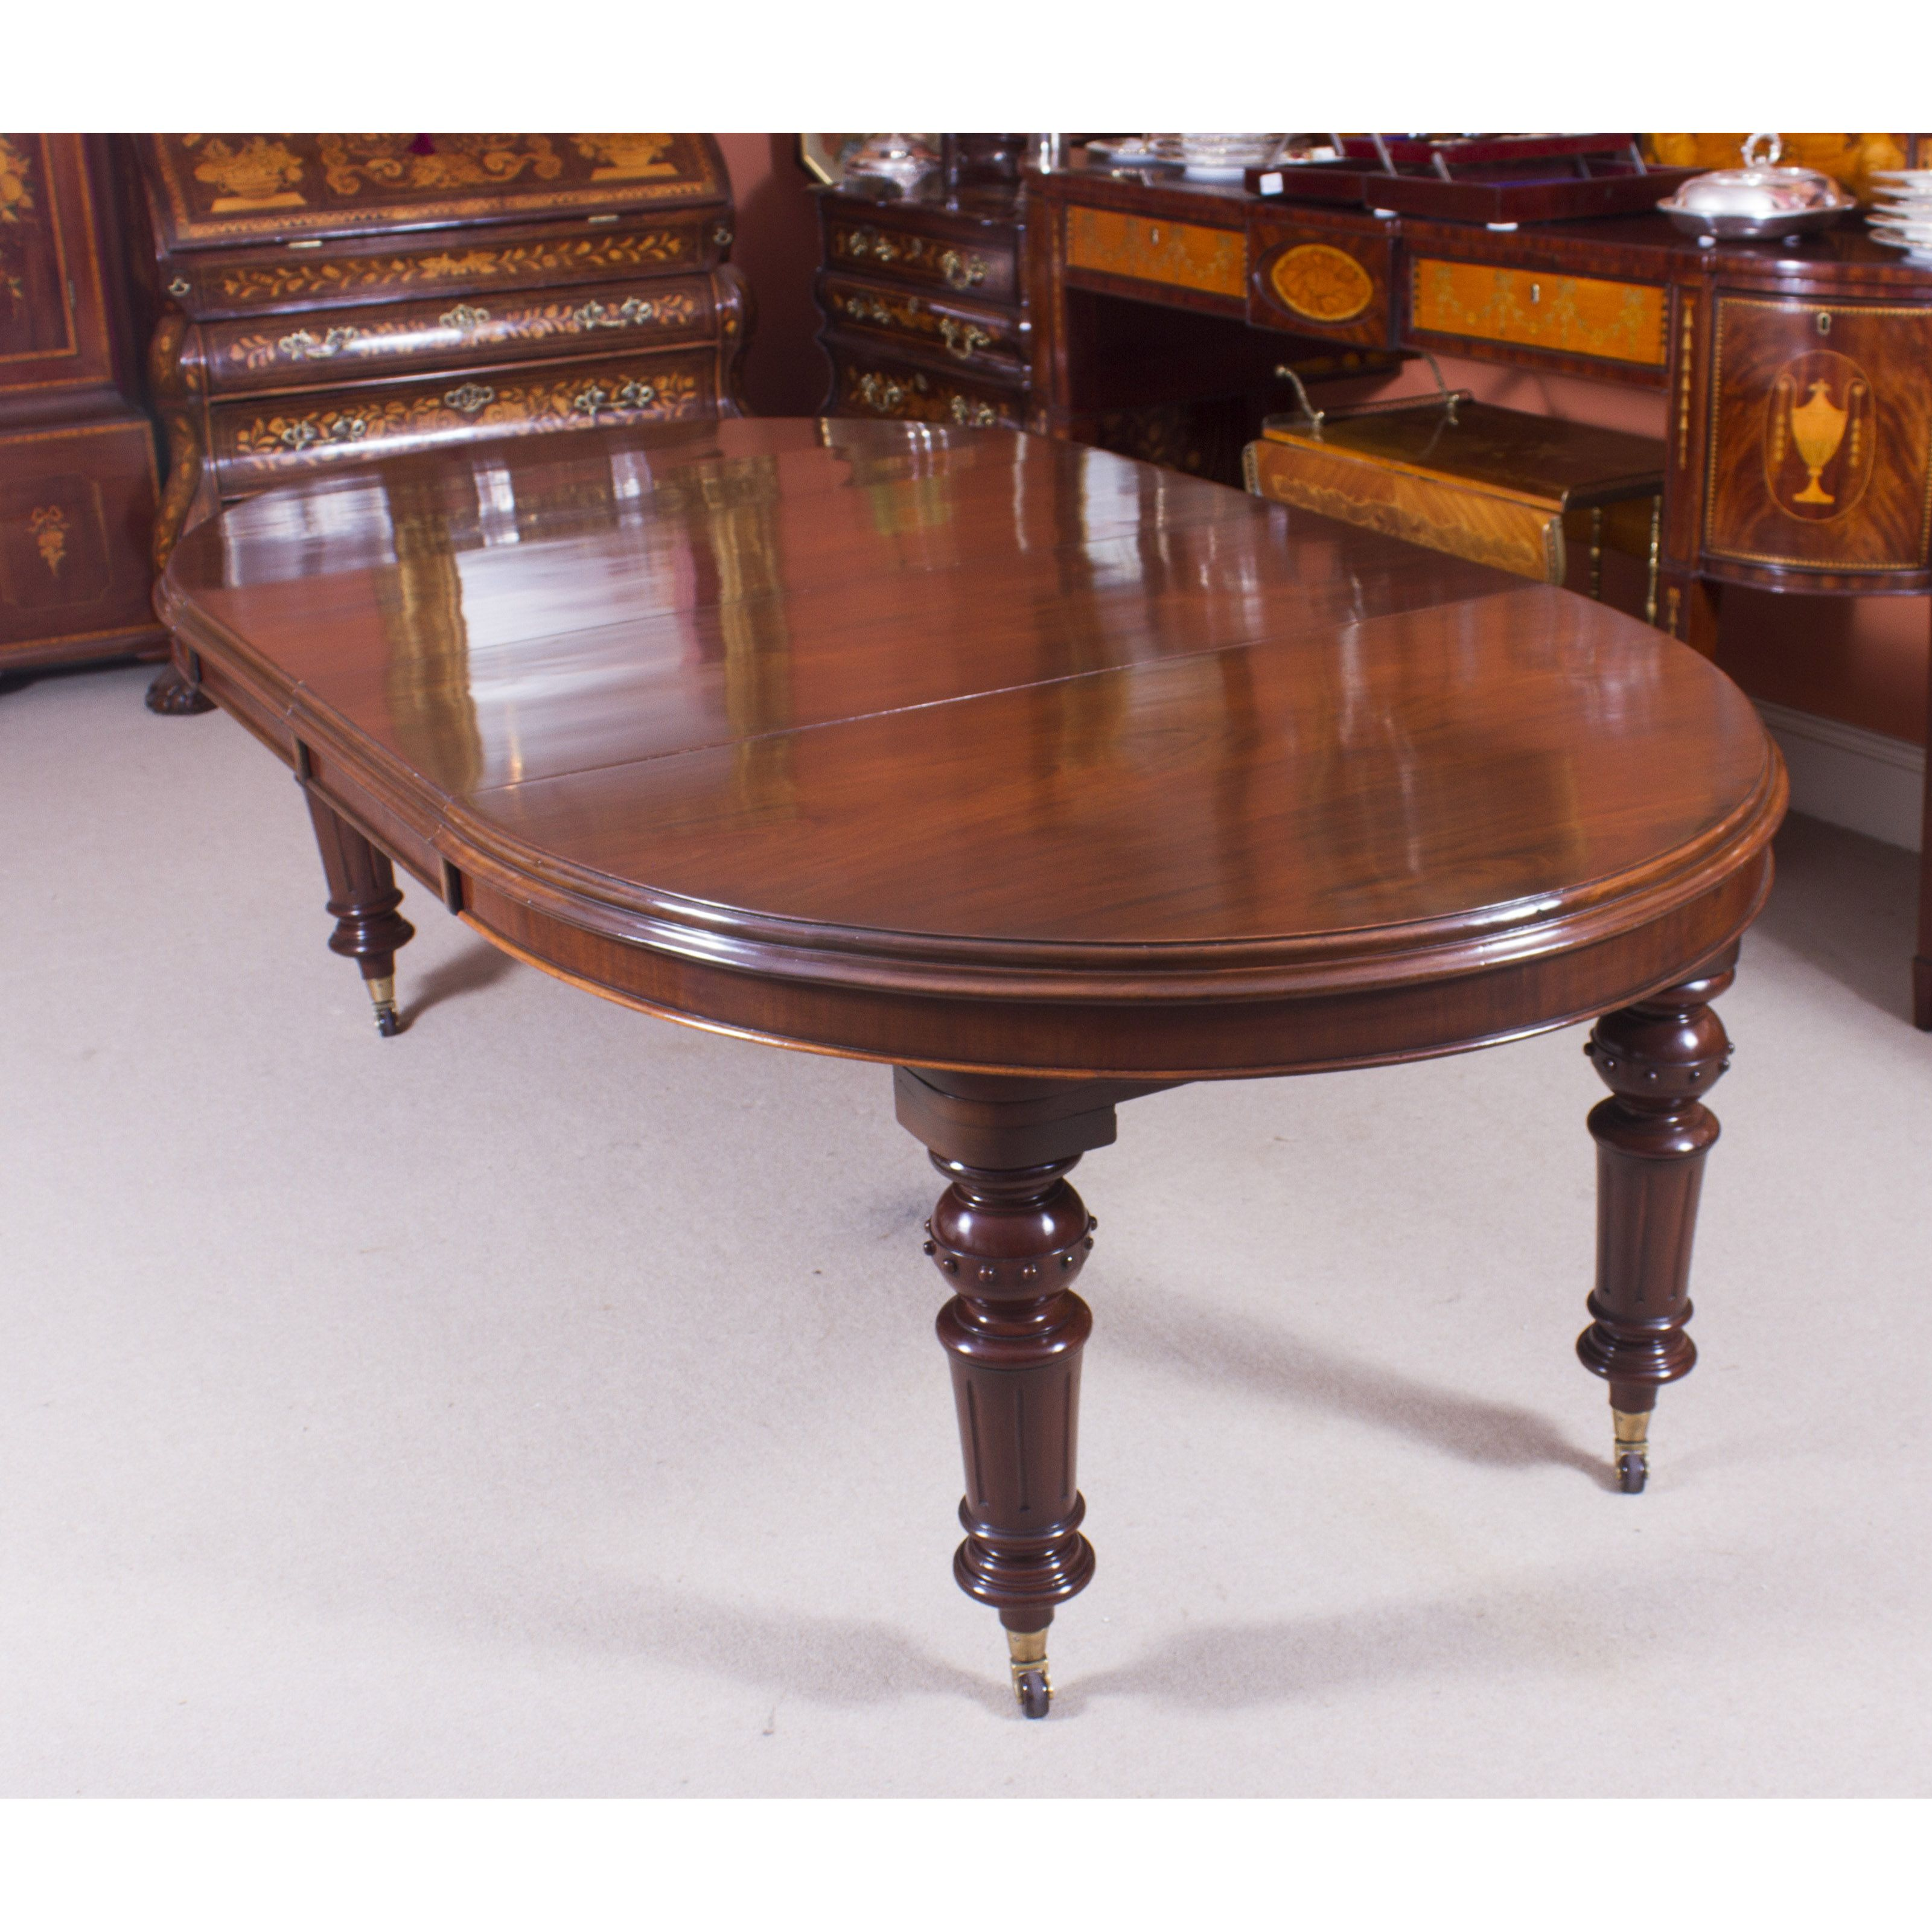 An Antique Victorian Oval Dining Table Made From Top Quality Solid Mahogany